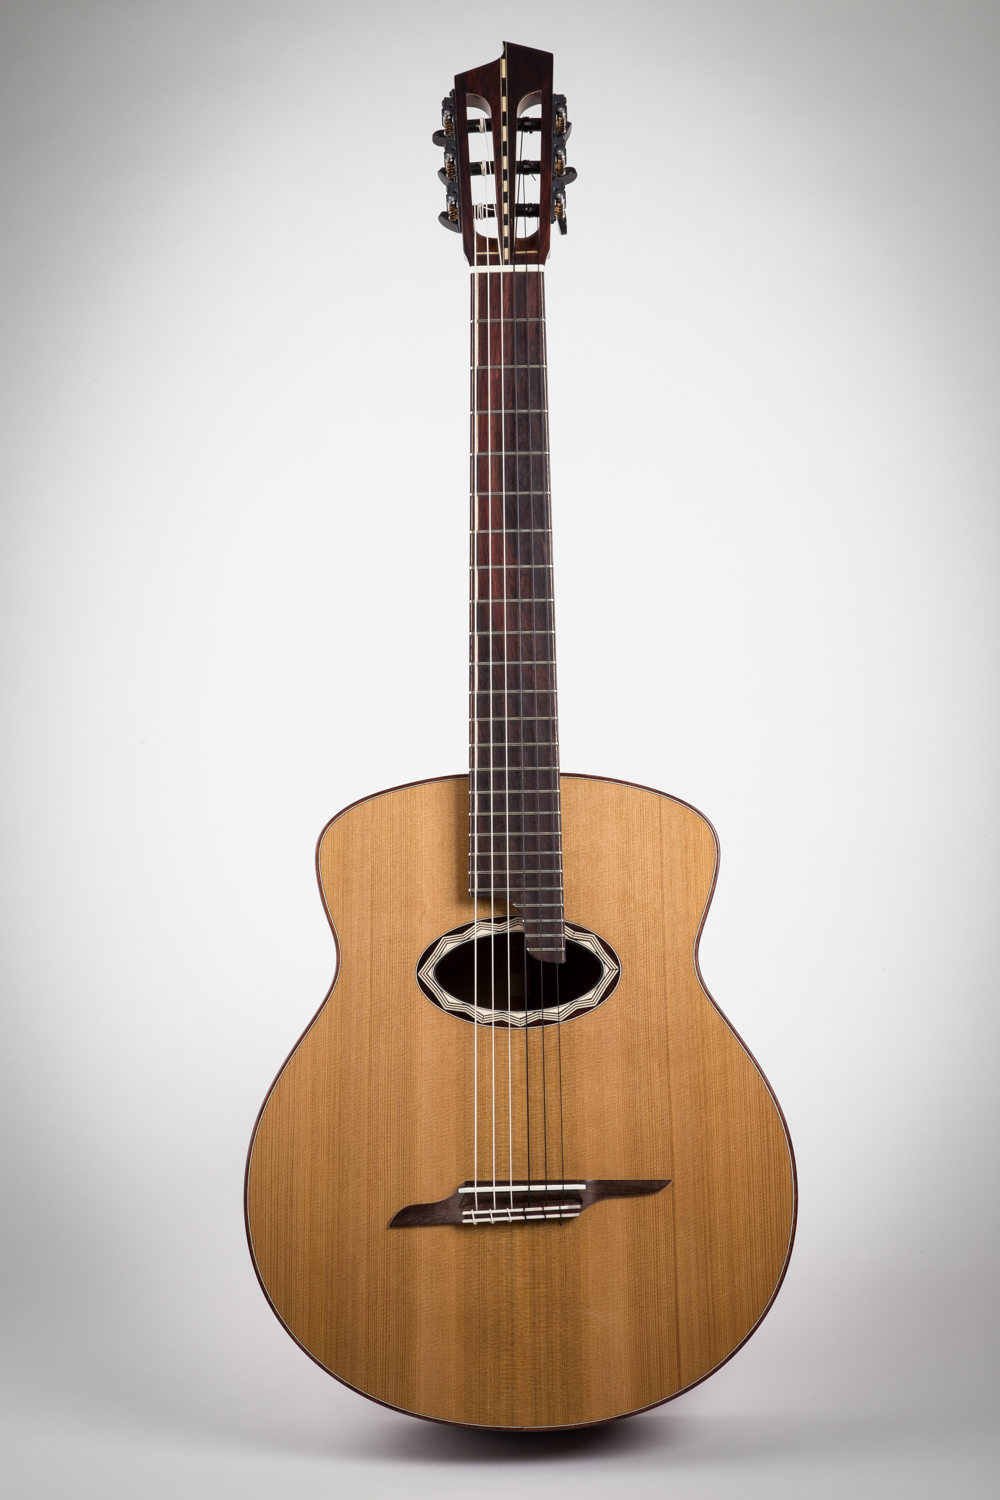 9D-f  western red cedar top, Lapacho back and side, indian rosewood bridge/fingerboard, appointments, 650mm